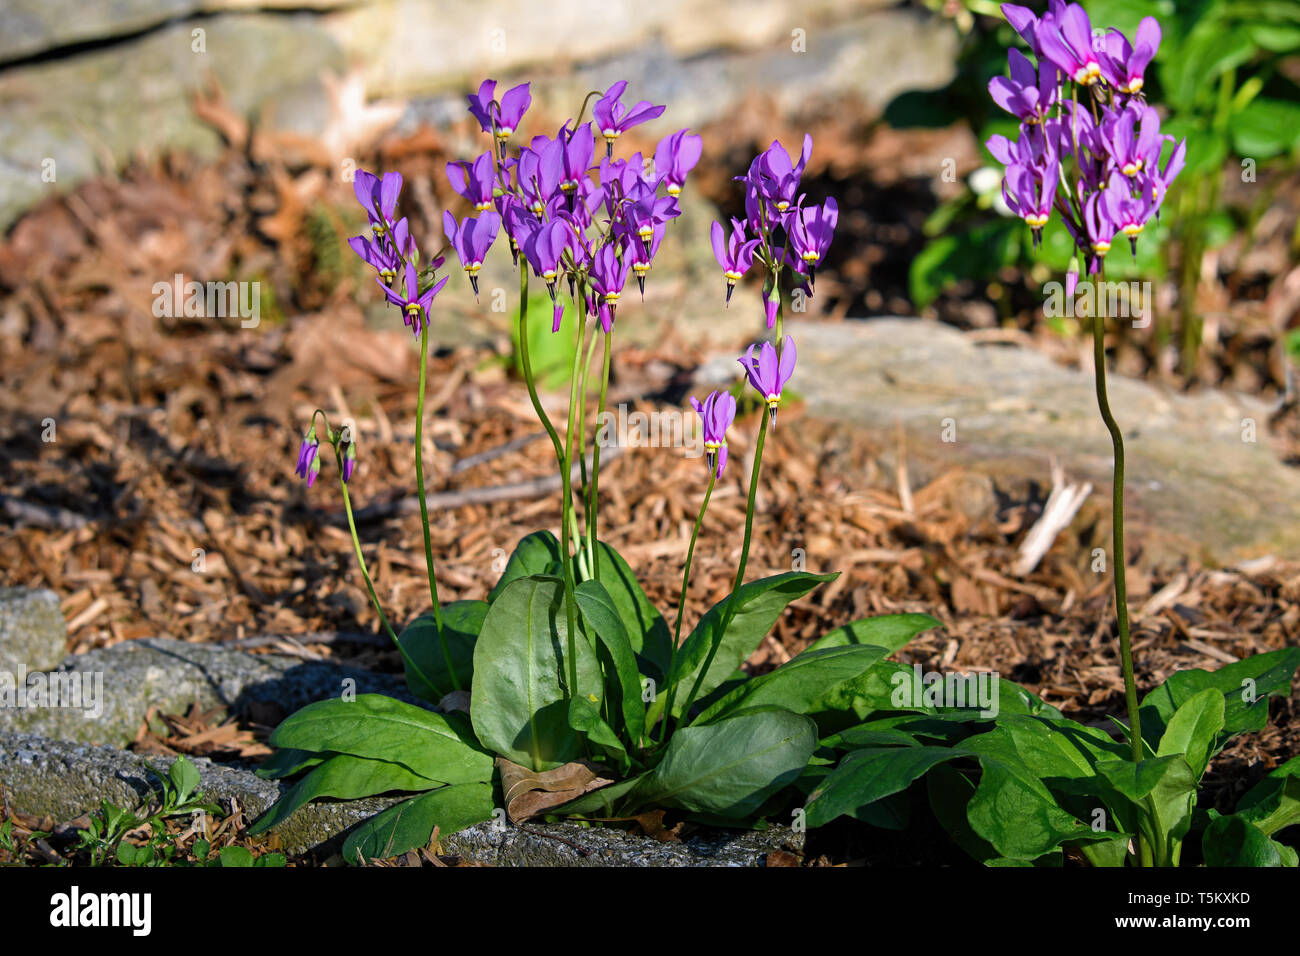 Shooting star or Dodecatheon in early morning sun. It is a genus of herbaceous flowering plants in the family Primulaceae. - Stock Image